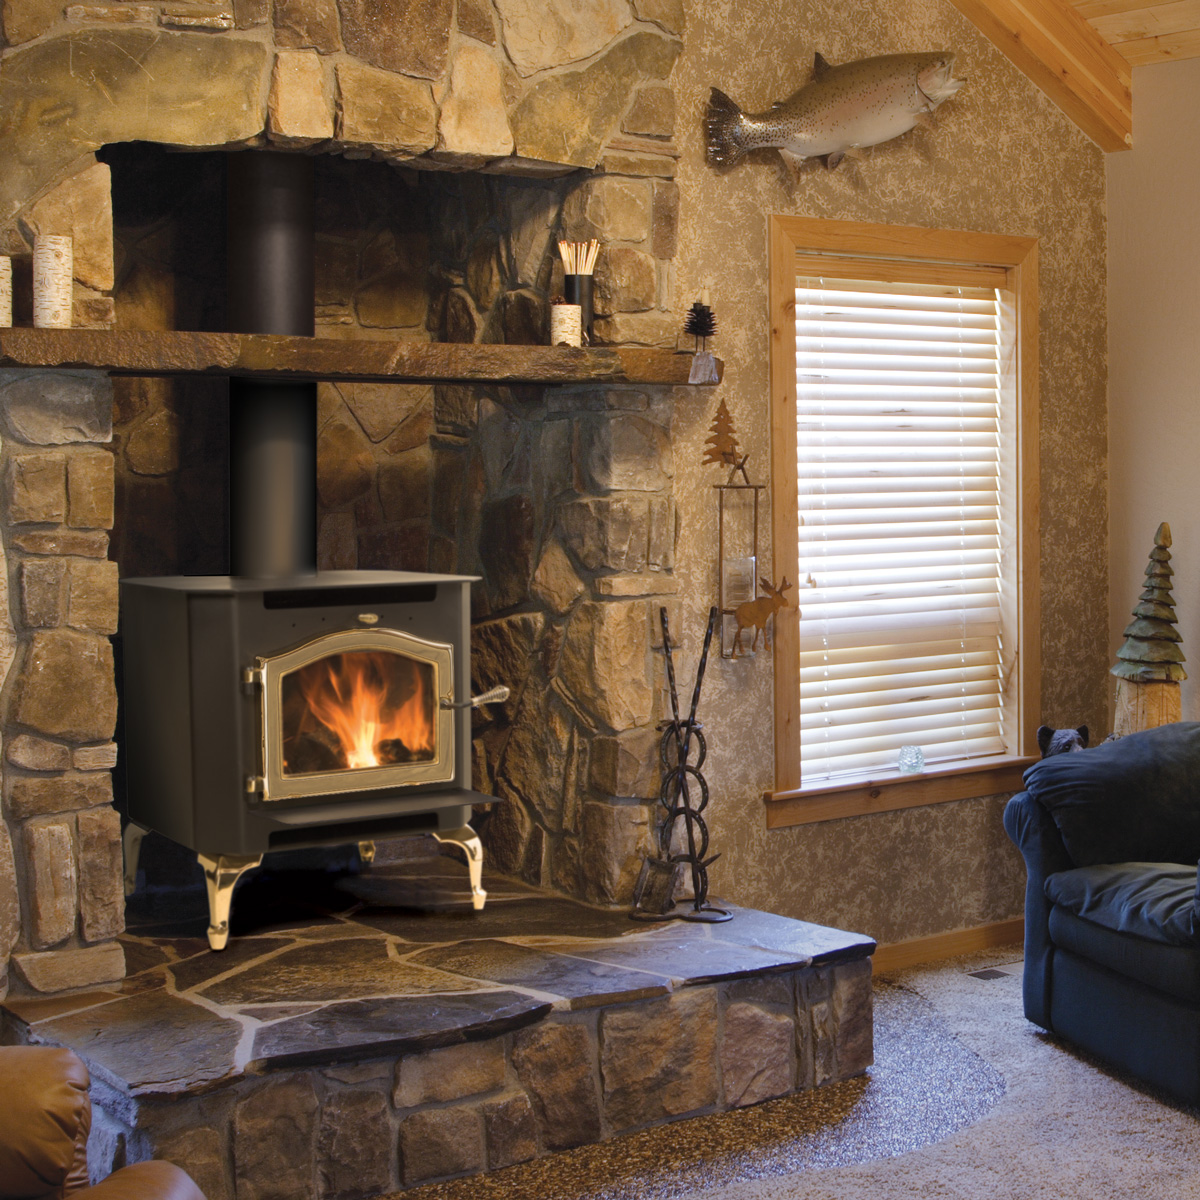 The Sequoia wood stove boasts the highest tested effeciency of any stove in North America